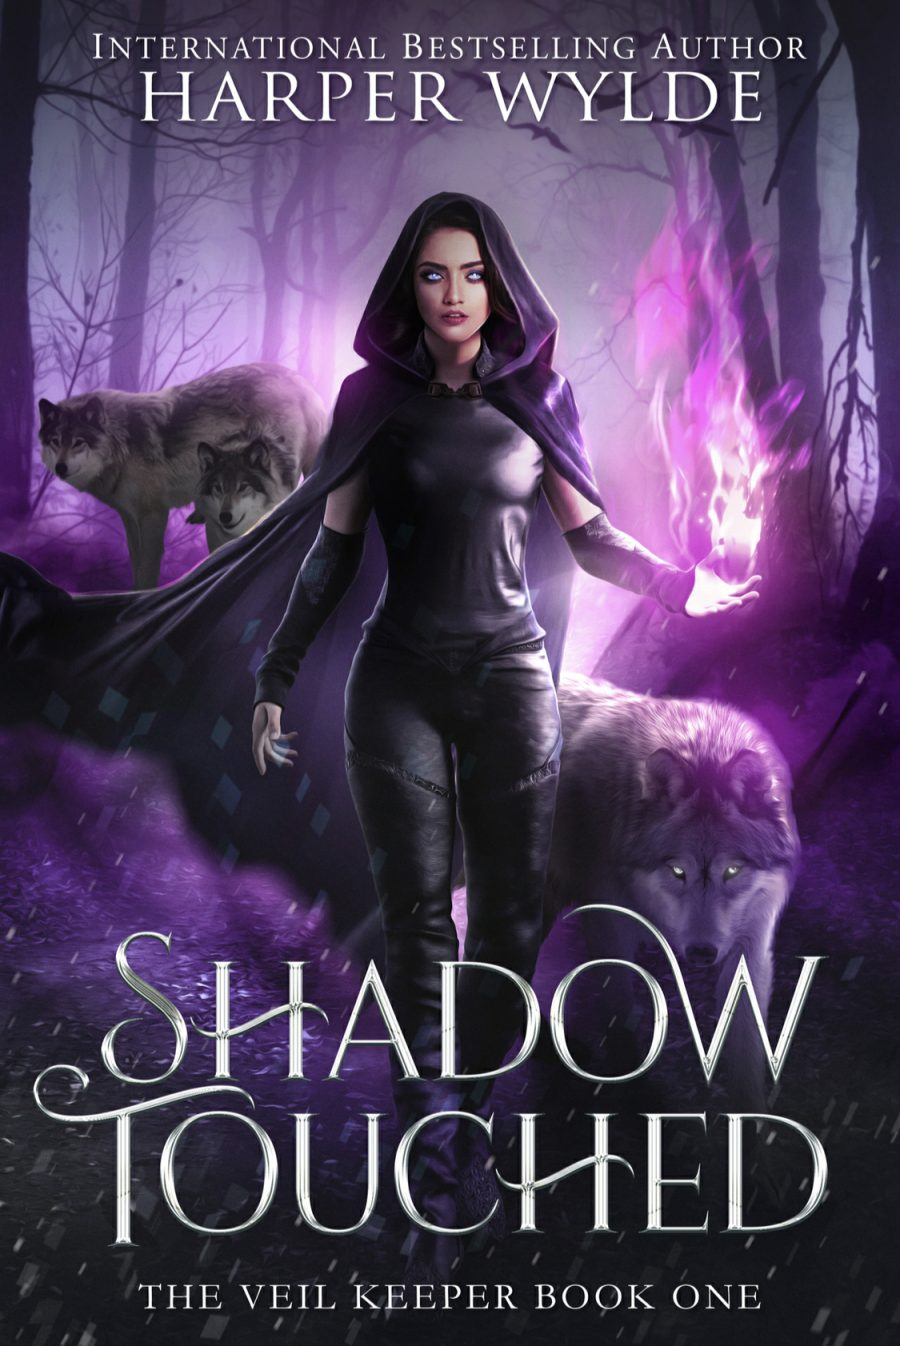 Shadow Touched by Harper Wylde - A Book Review #BookReview #Review #PNR #Paranormal #Witches #SkinWalkers #4Stars #SlowBurn #RH #WhyChoose #KU